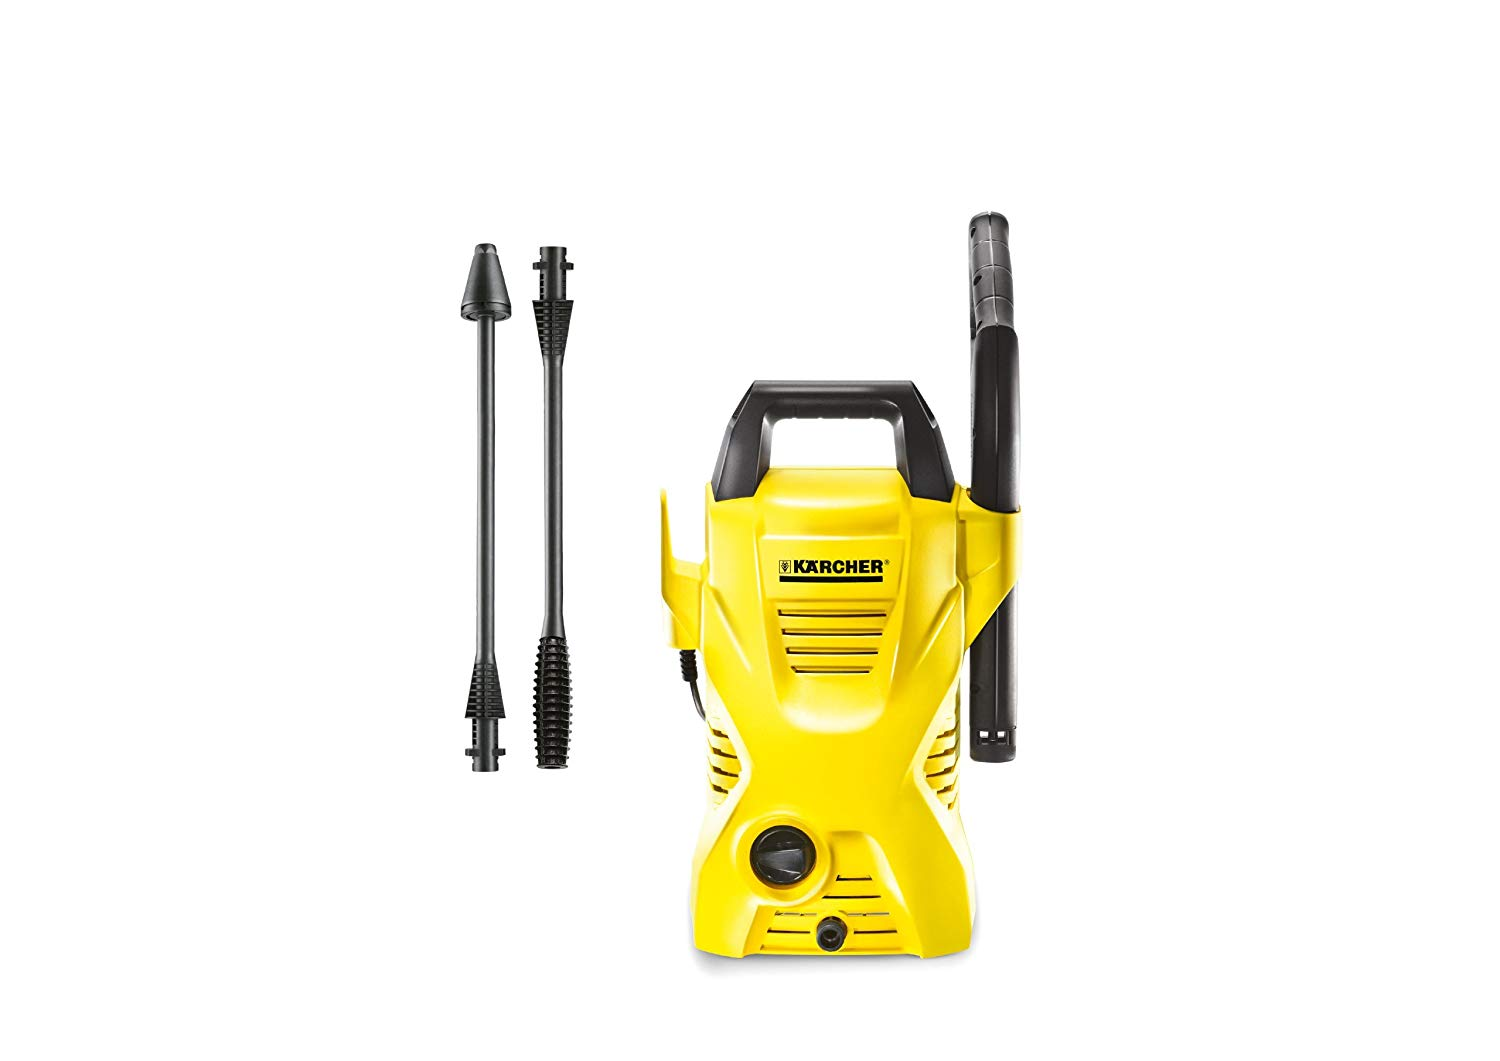 Kärcher K2 Compact Home and Car Air-Cooled Pressure Washer Key features